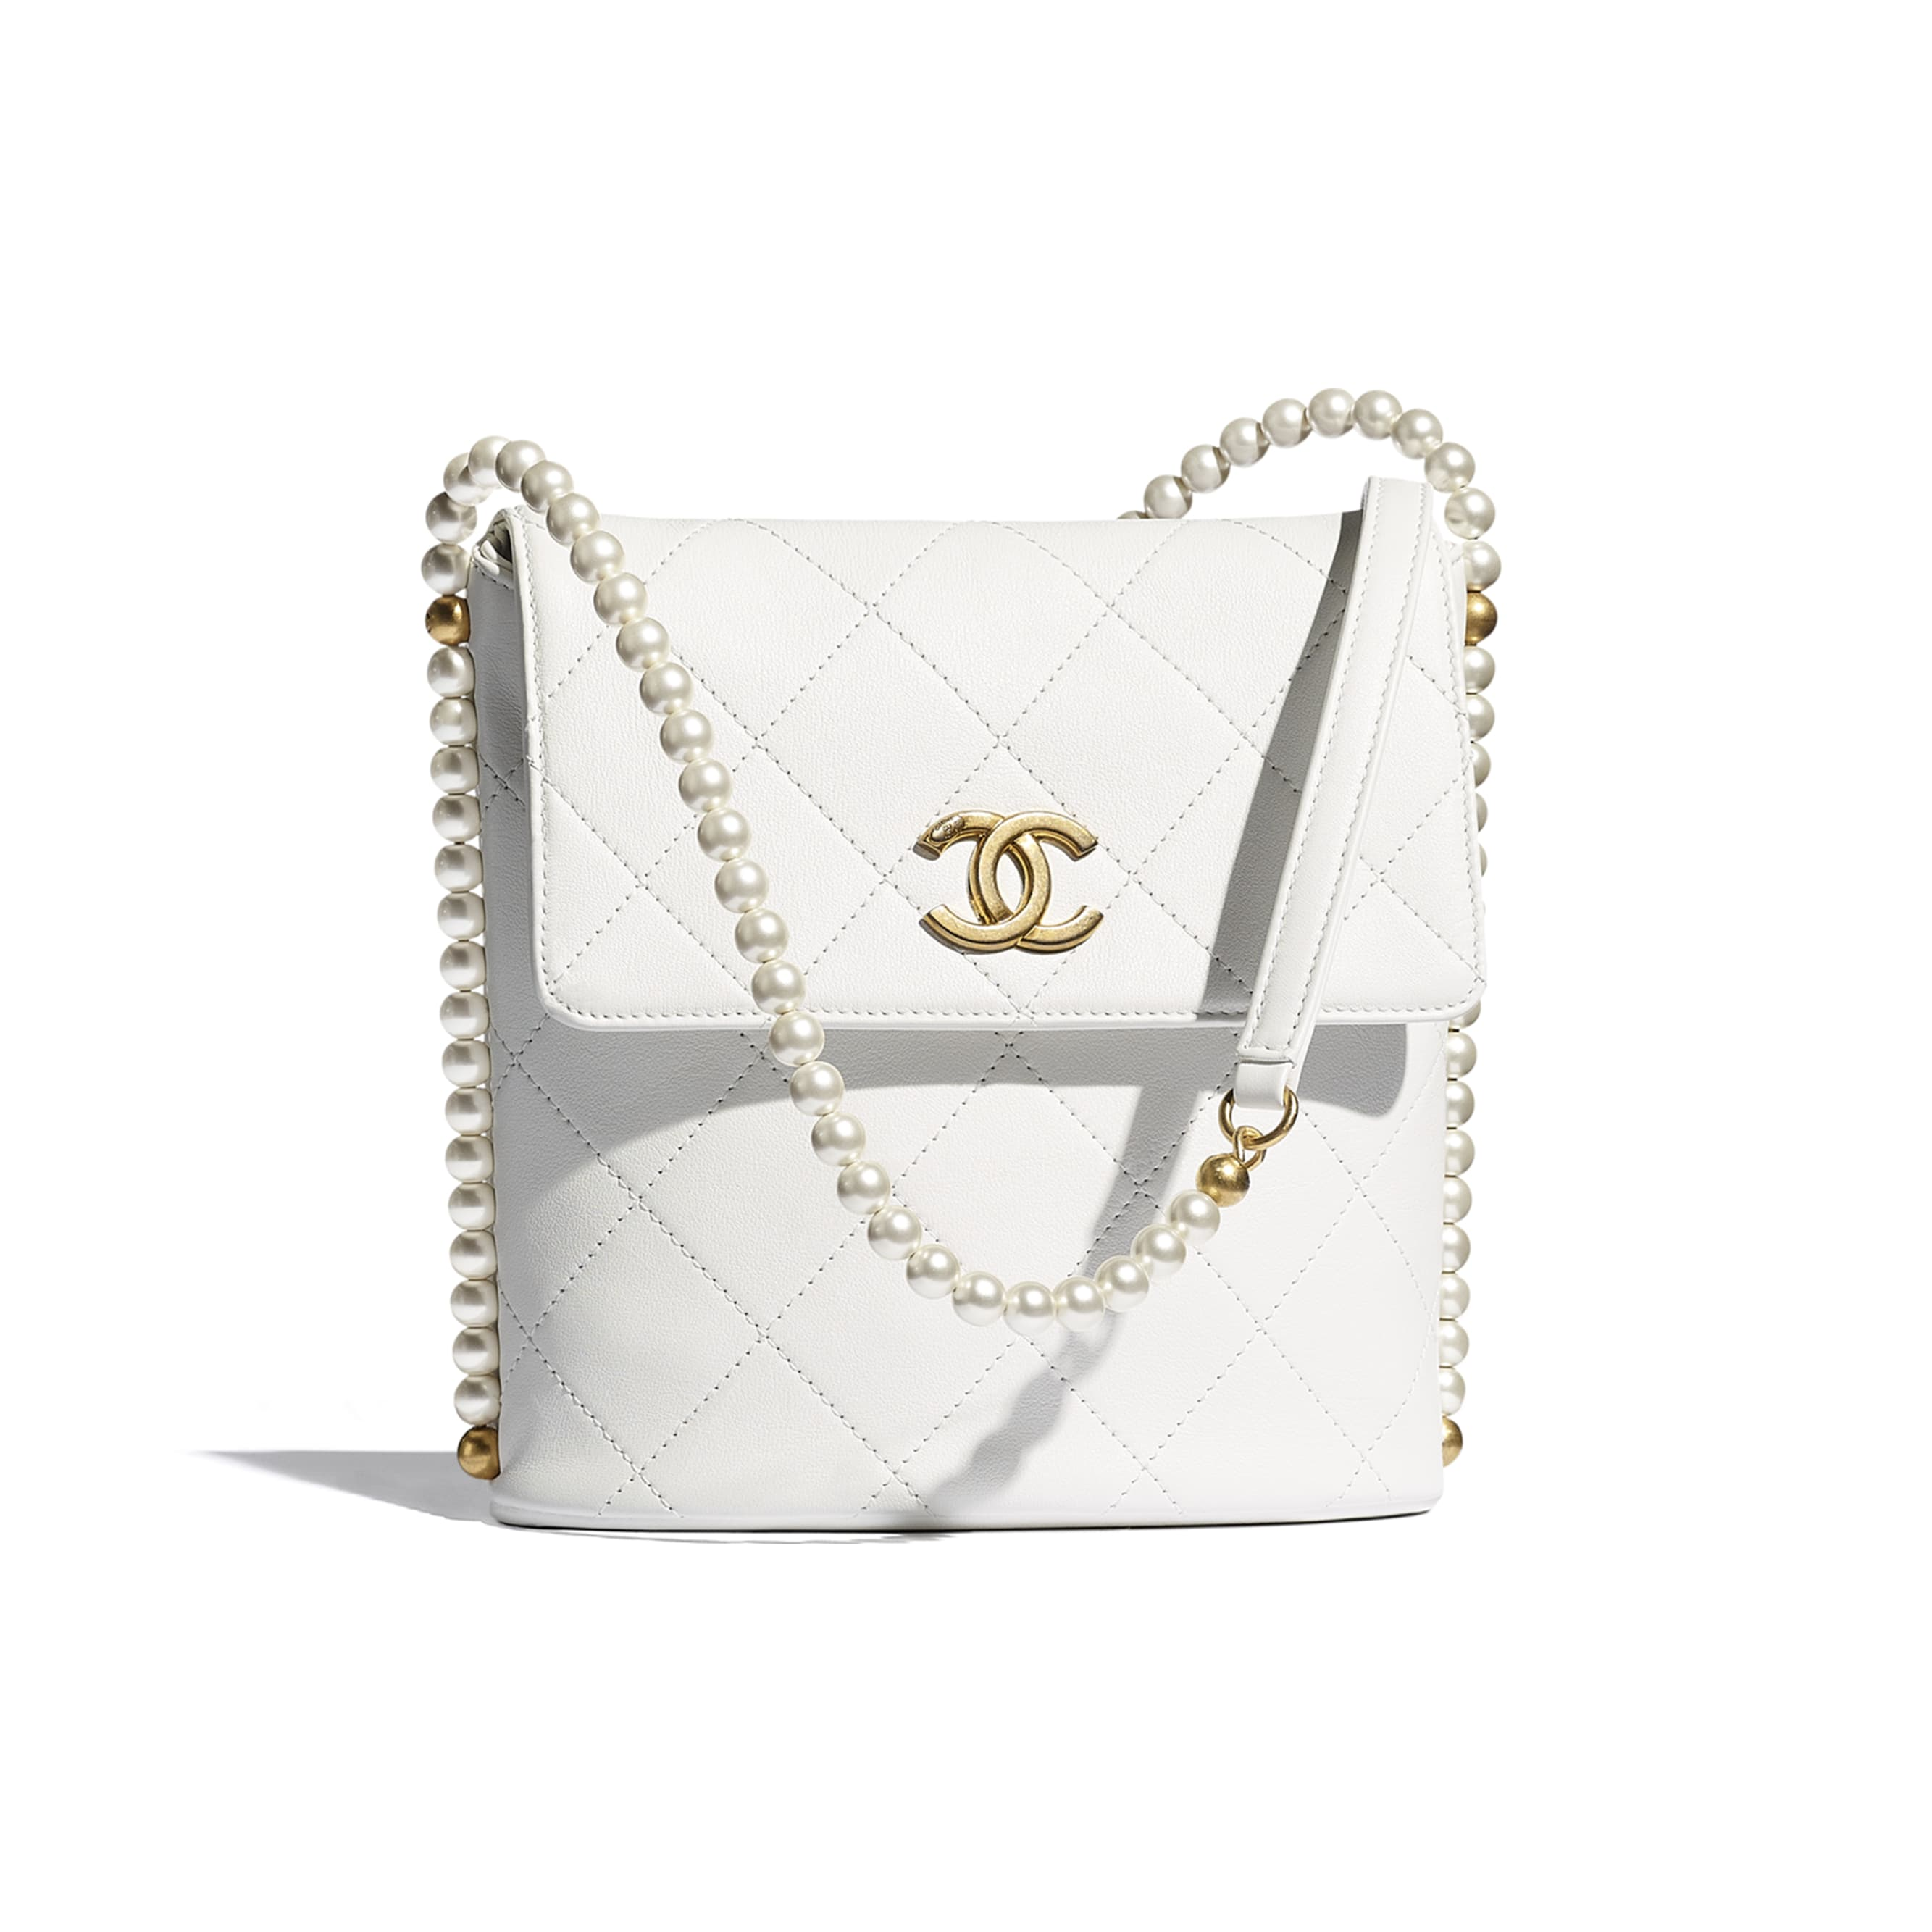 Small Hobo Bag - White - Calfskin, Imitation Pearls & Gold-Tone Metal - CHANEL - Default view - see standard sized version